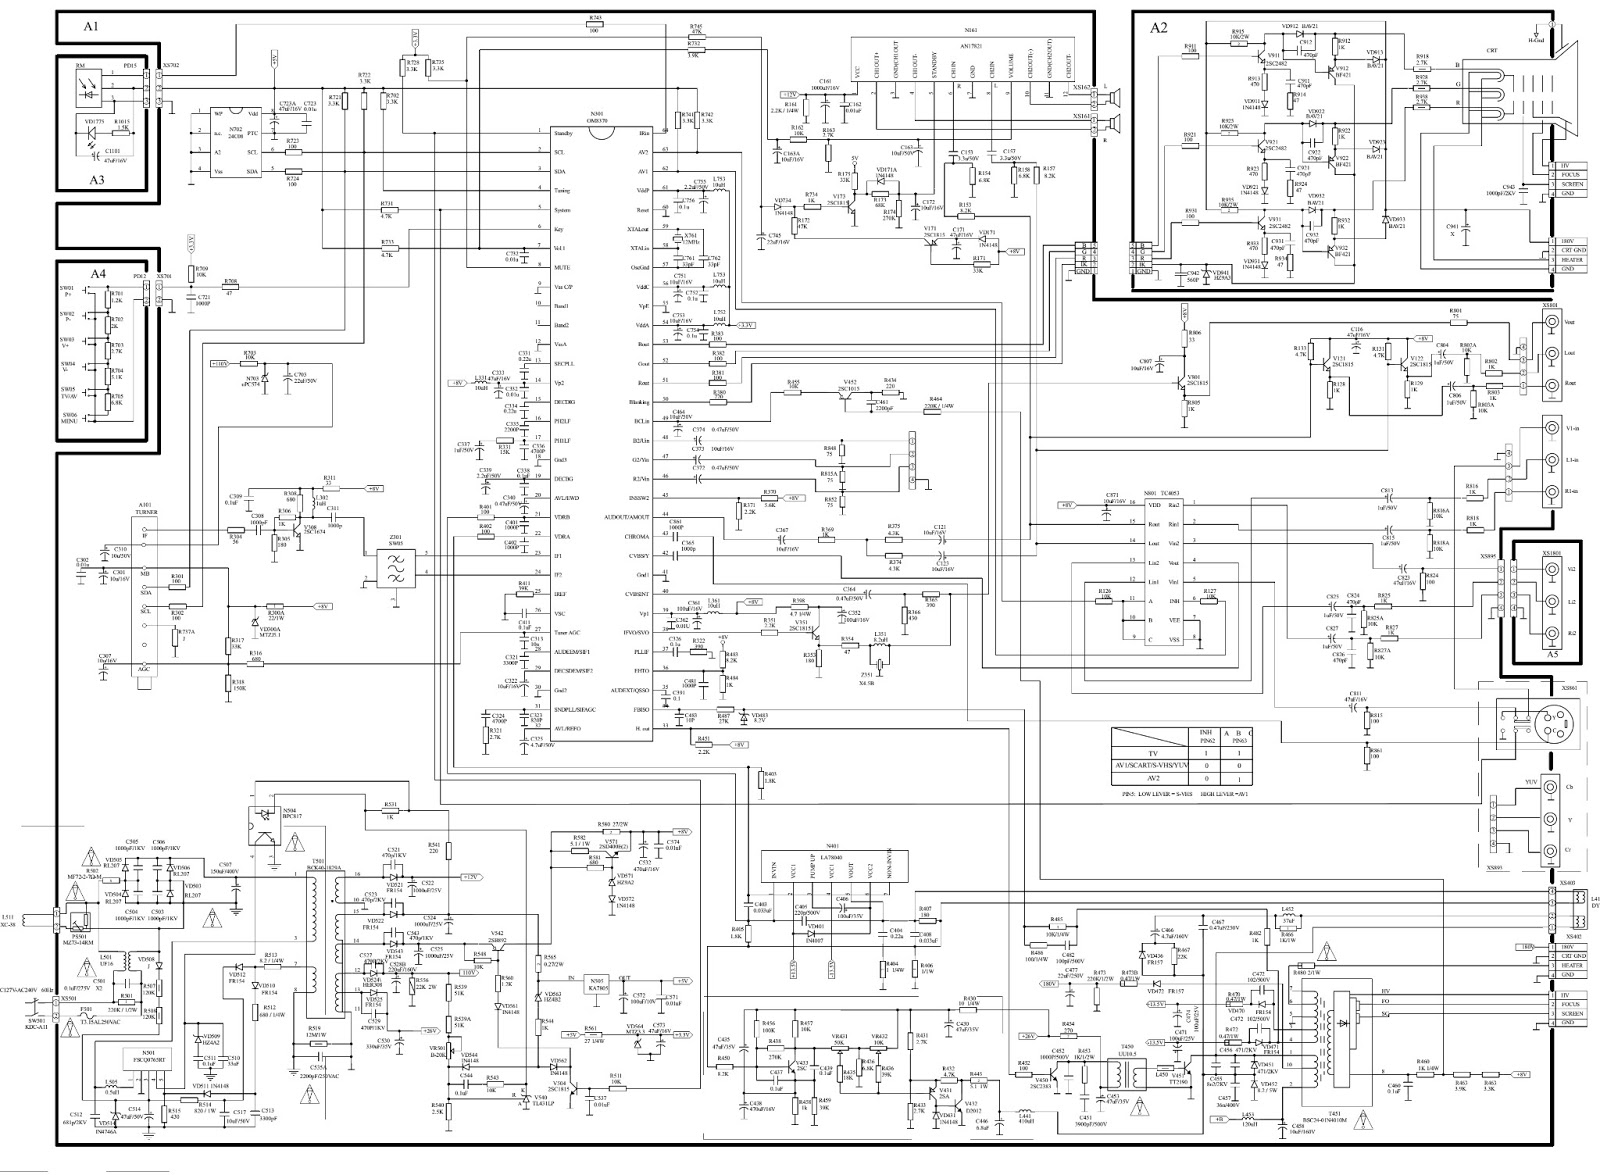 philco ph-21 - schematic diagram  circuit diagram